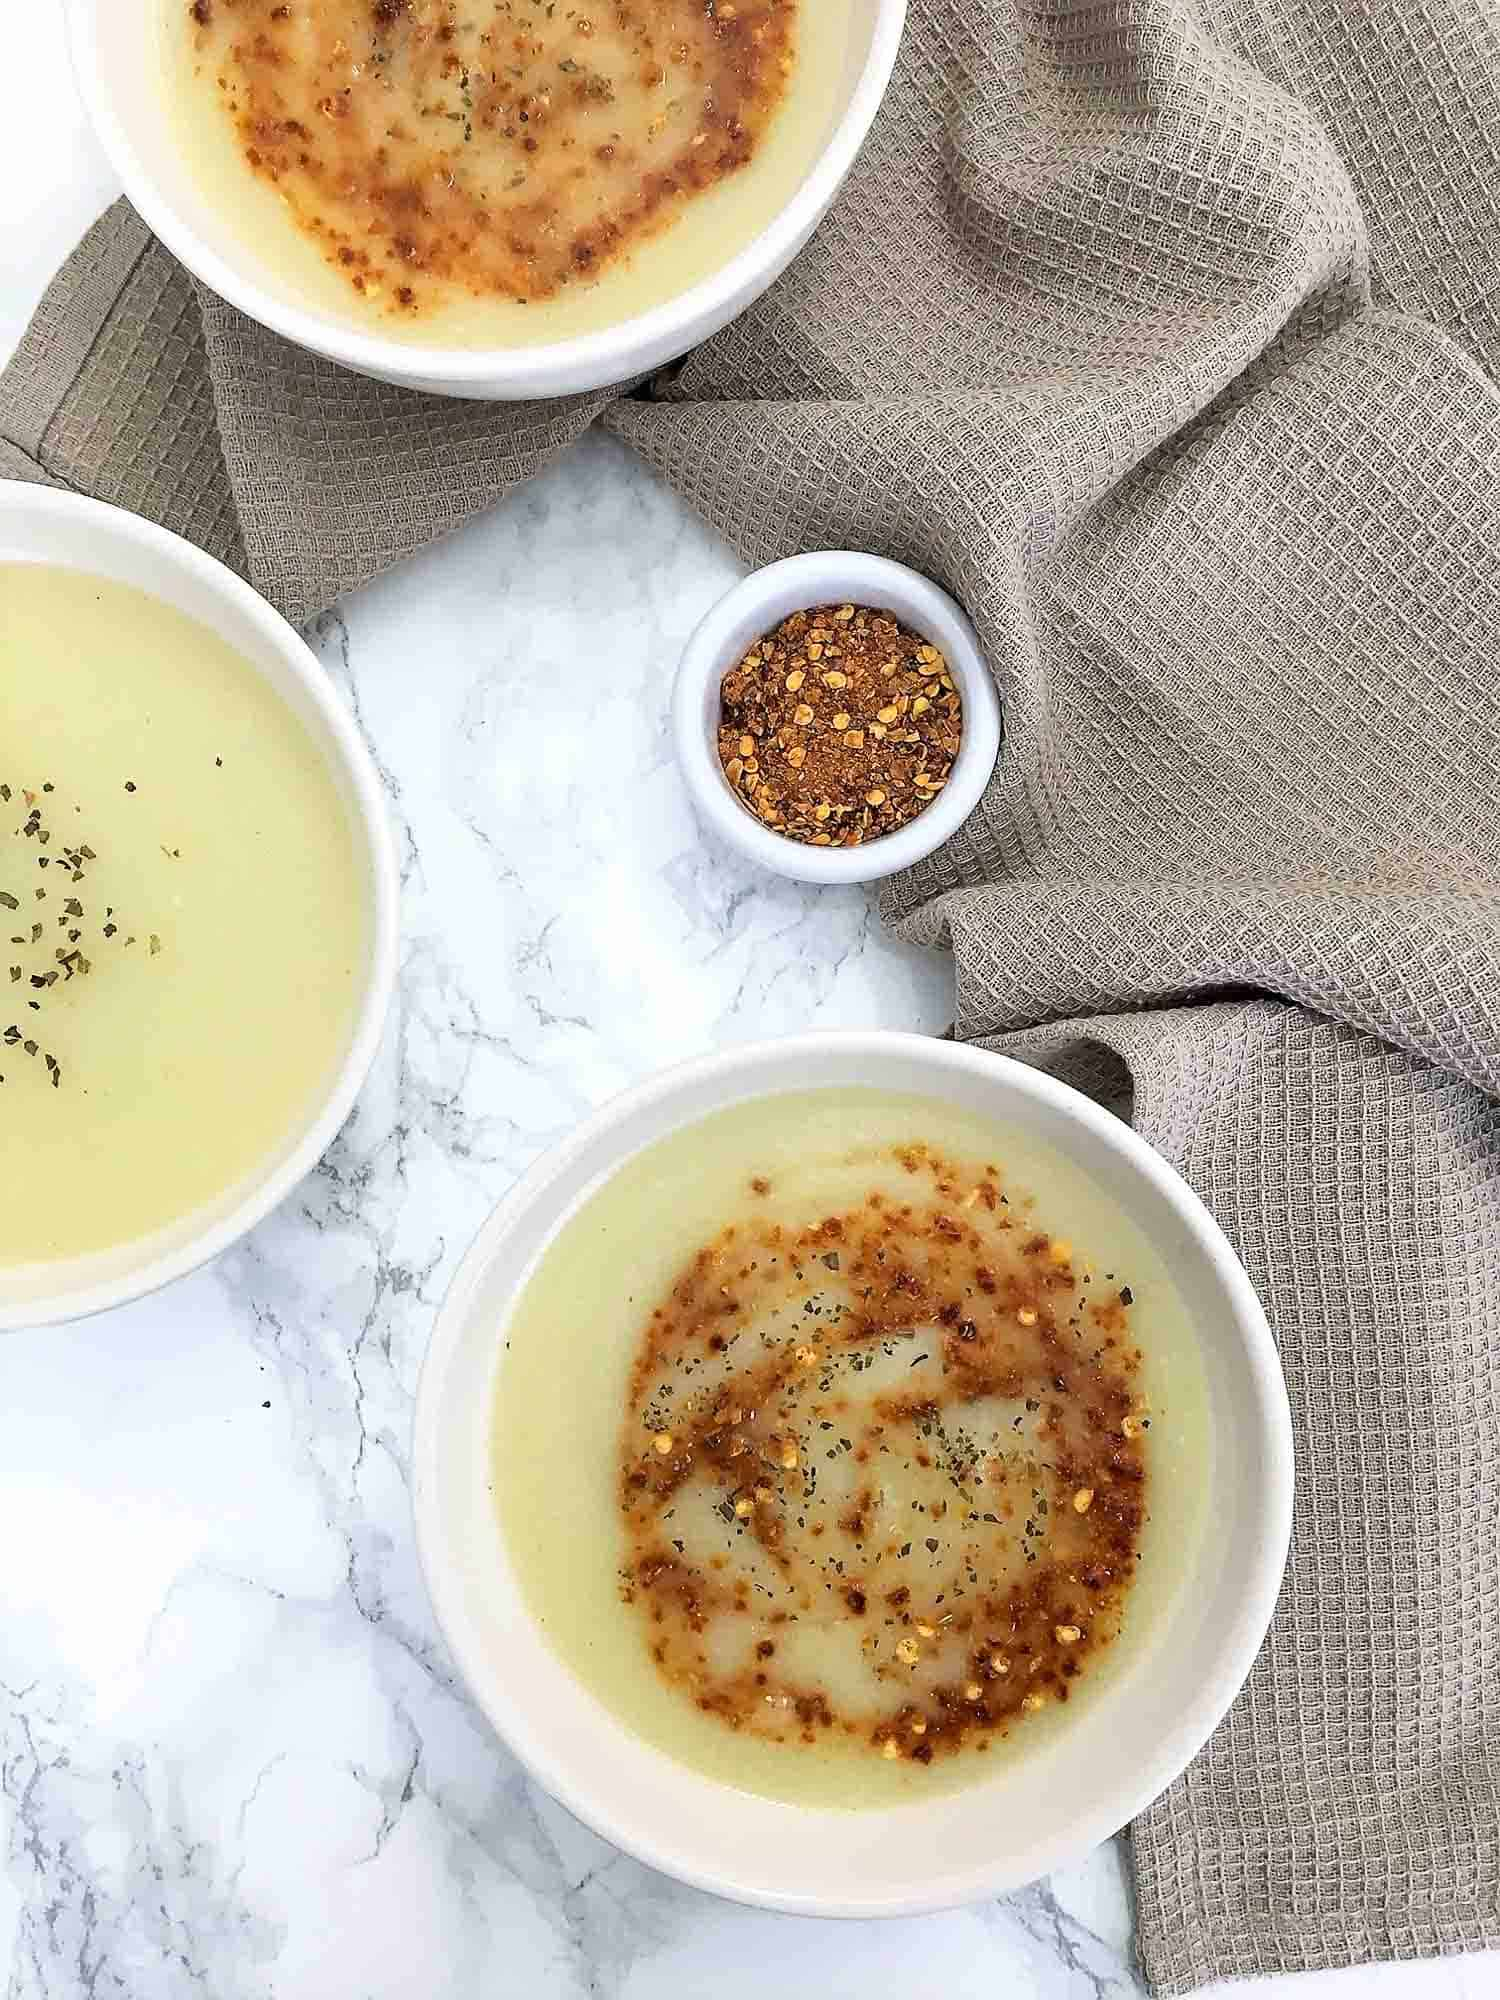 three bowls of creamy soup with brown towel beside them